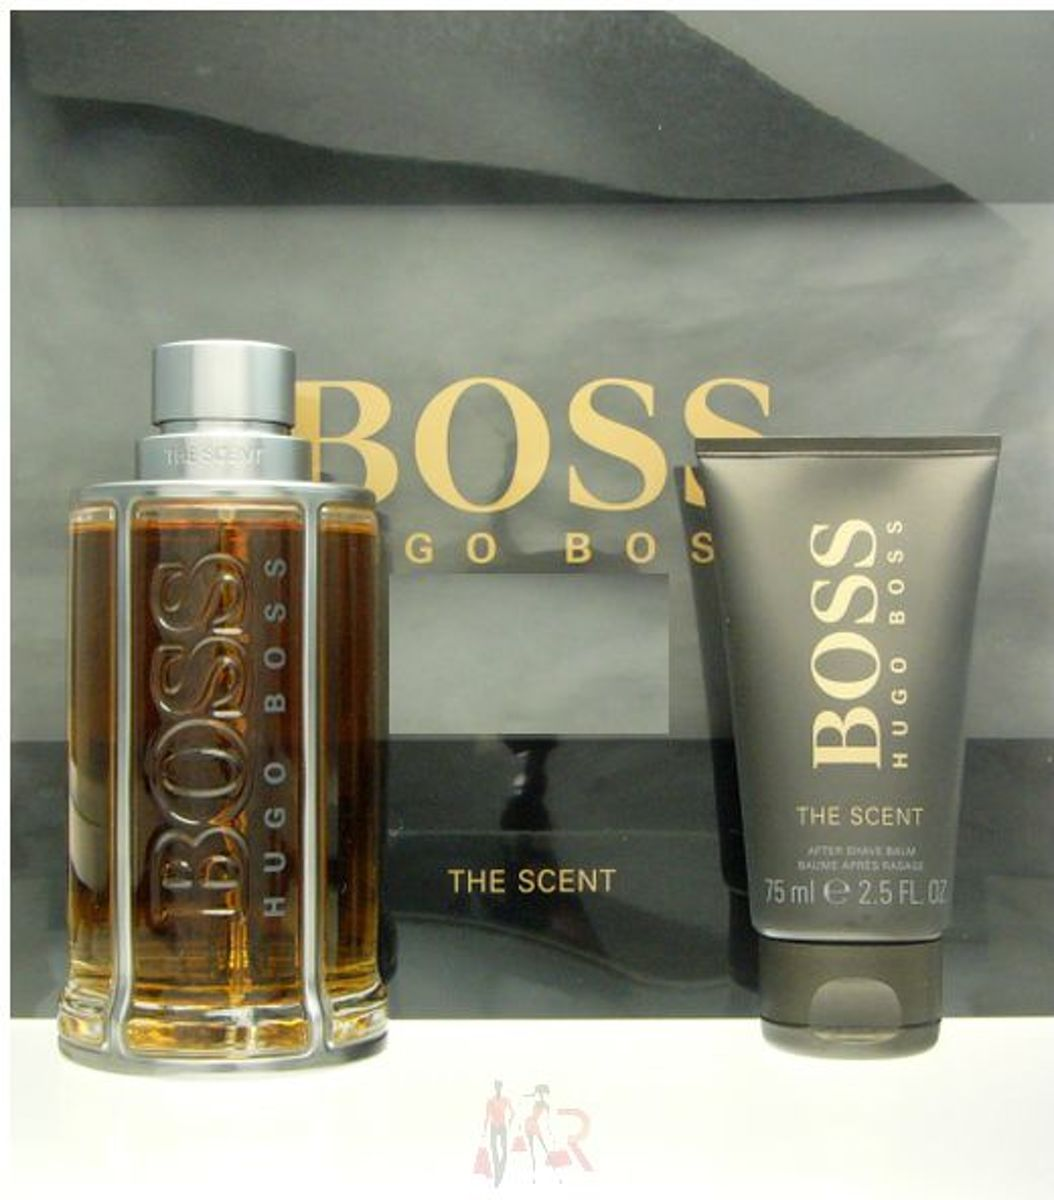 Hugo Boss - Eau de toilette - The Scent 200ml eau de toilette + 75ml aftershave balm - Gifts ml